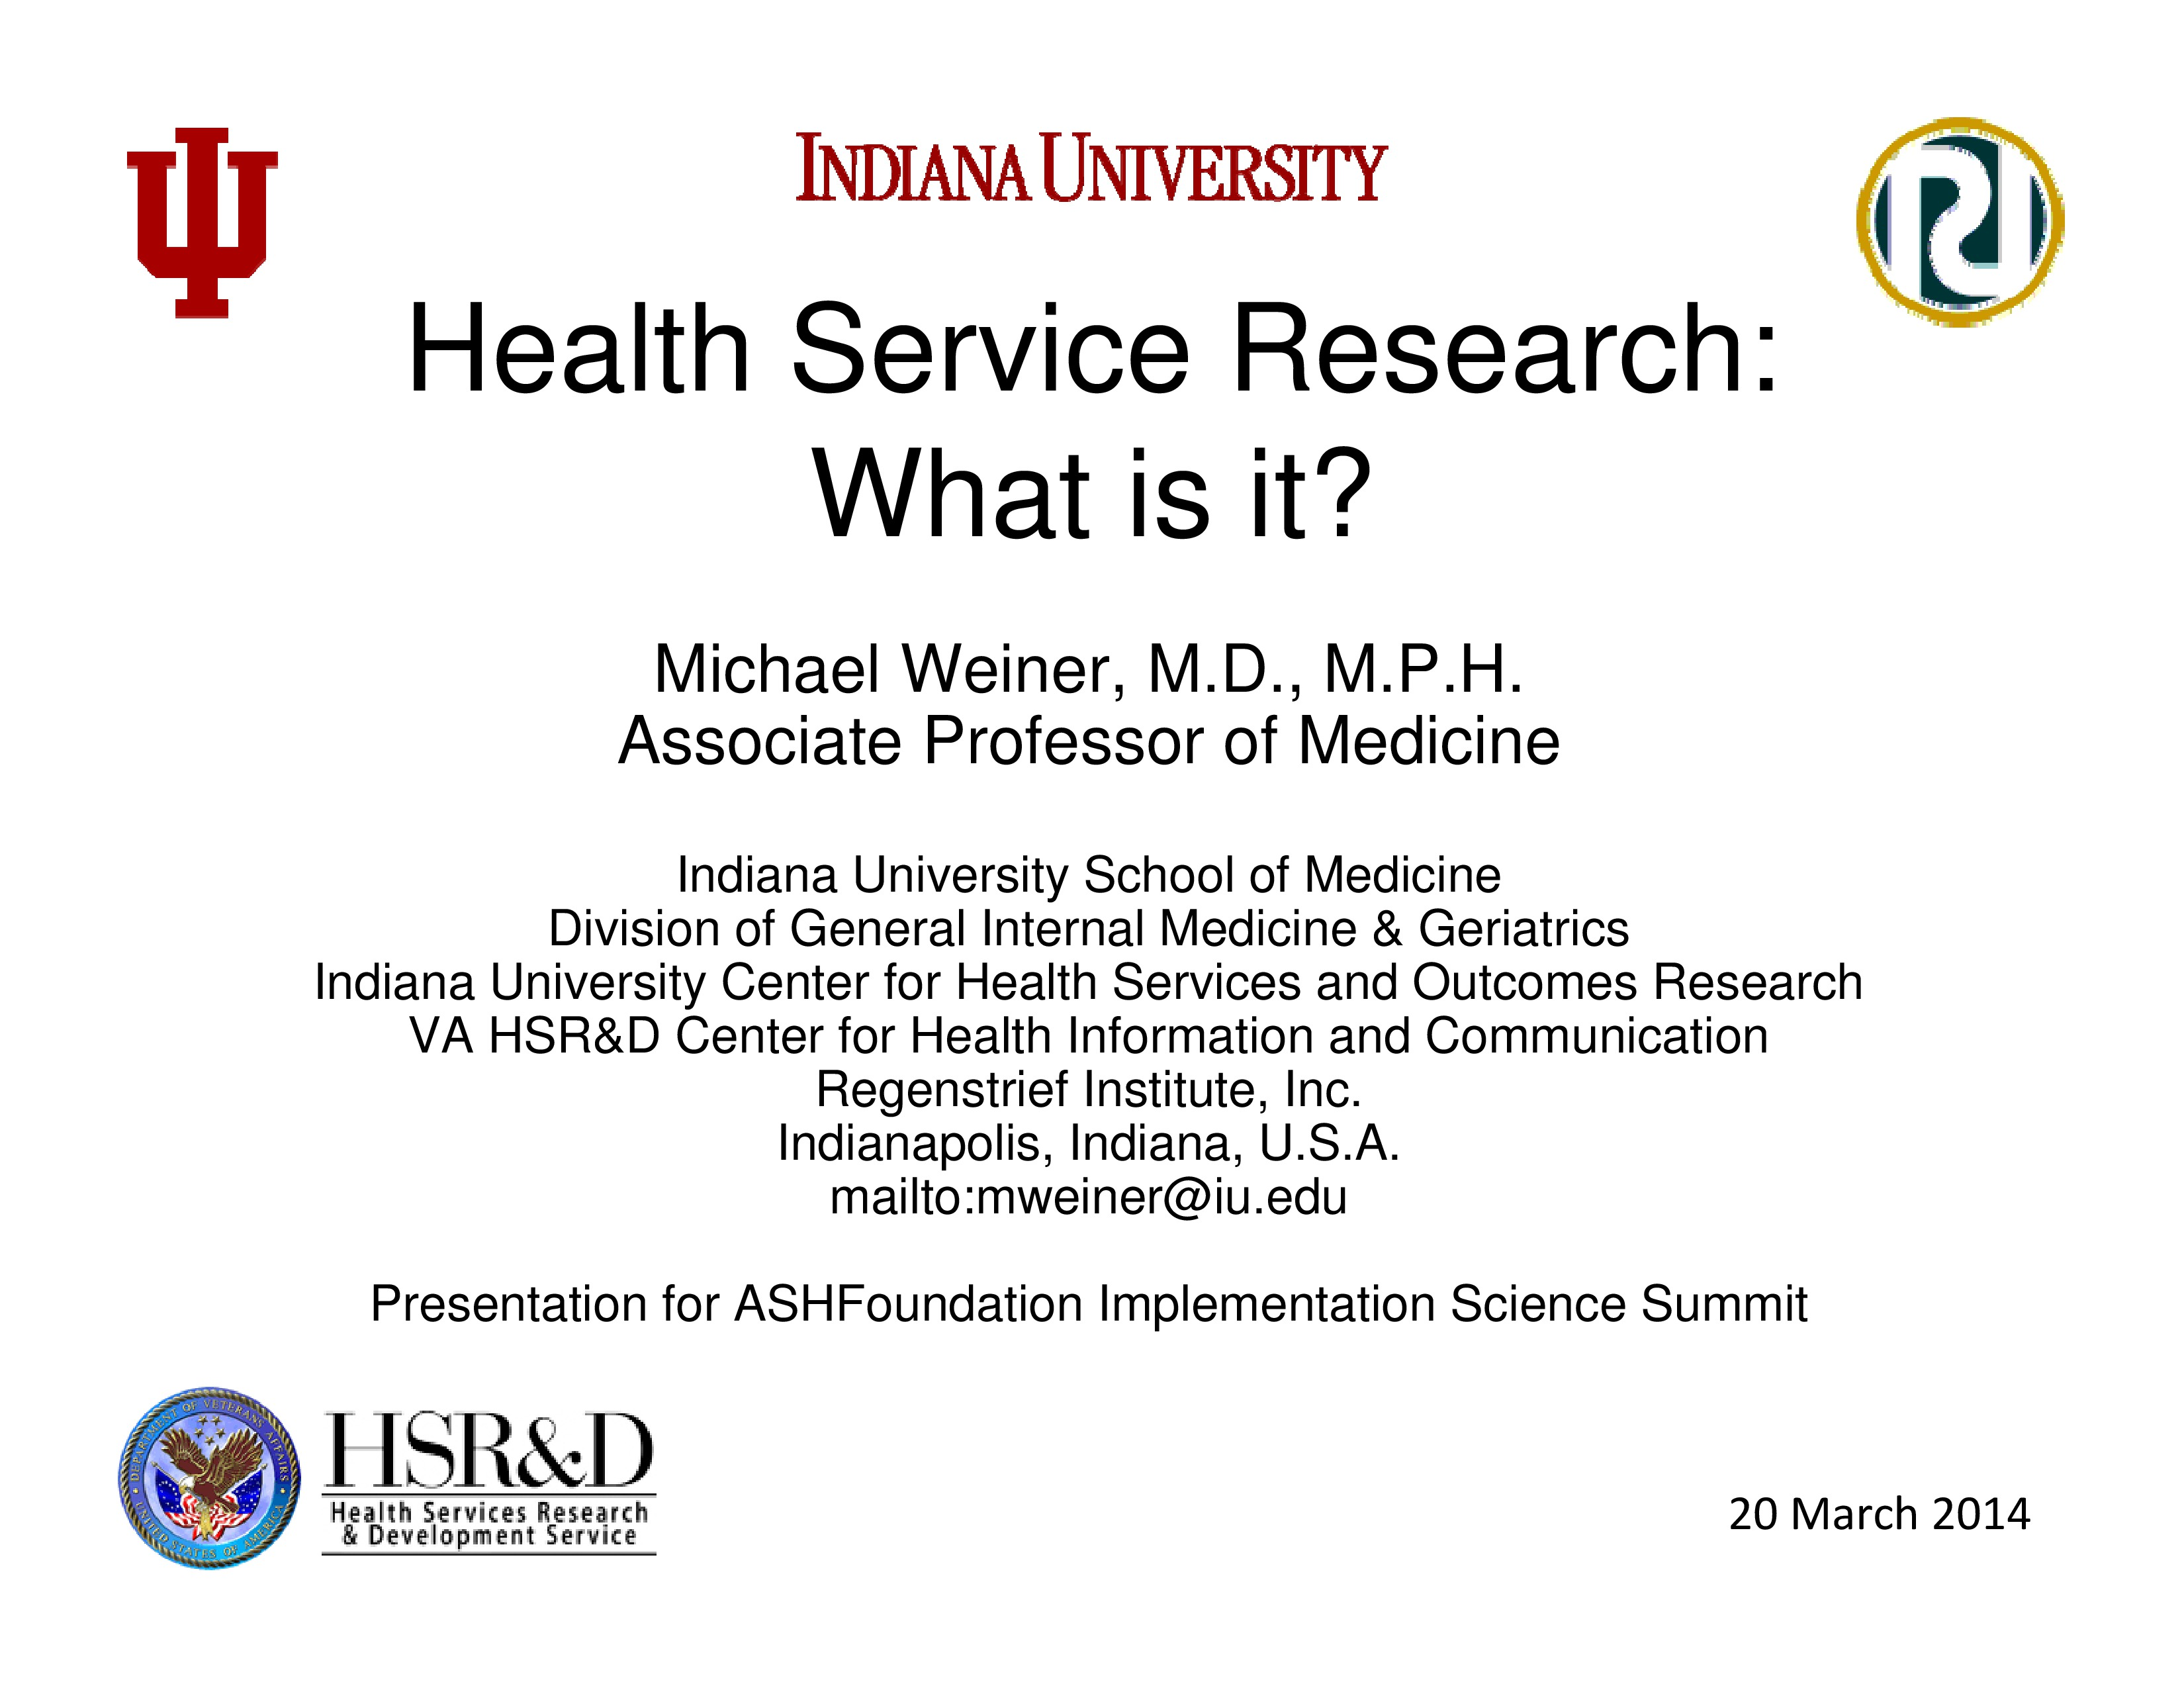 Health Service Research: What Is It? | ASHA Journals Academy